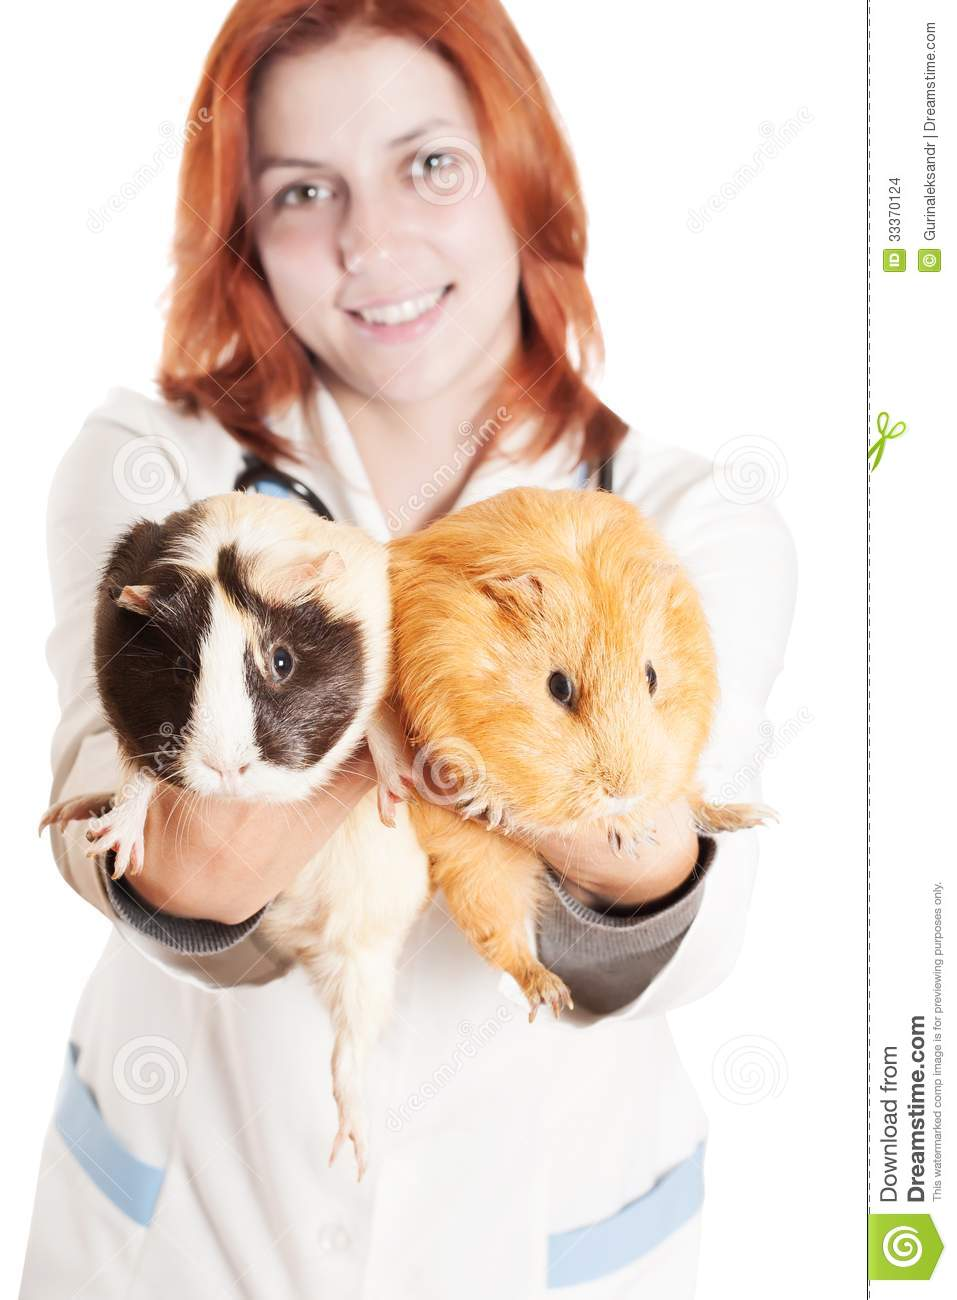 ... on outstretched arms guinea pig on a white background isolated